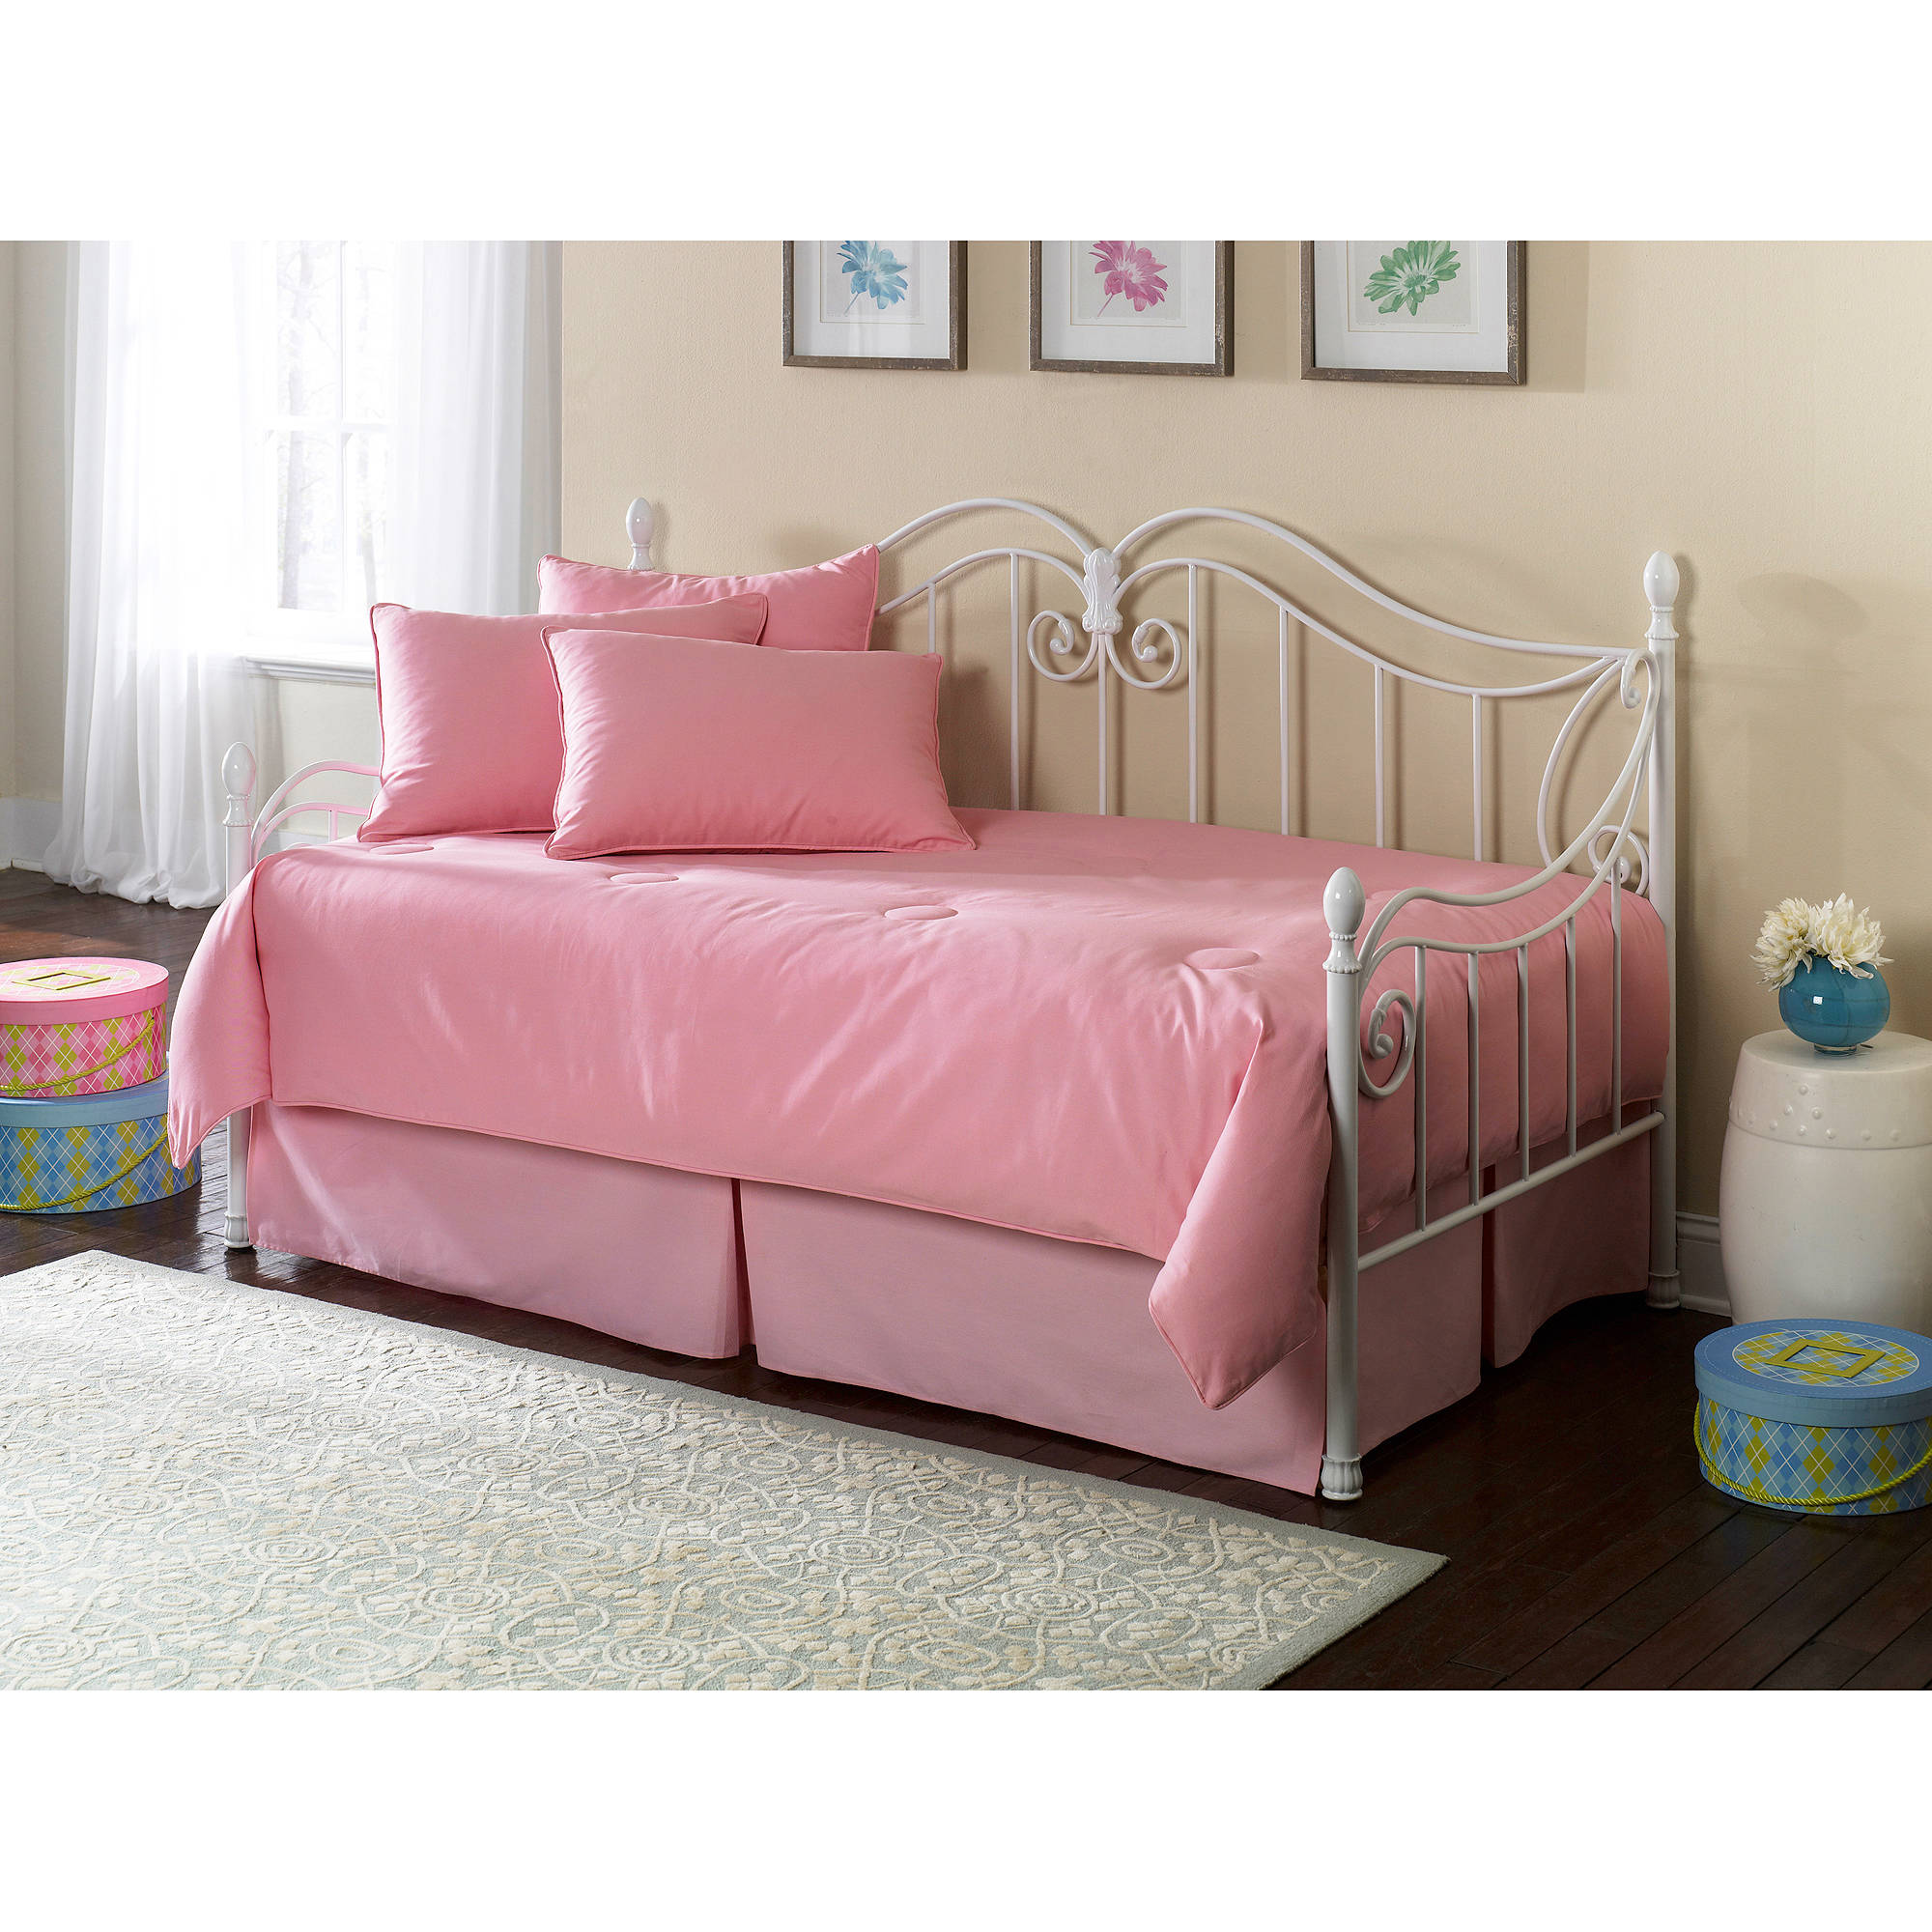 Southern Textiles Pink Daybed Ensemble, 5pc